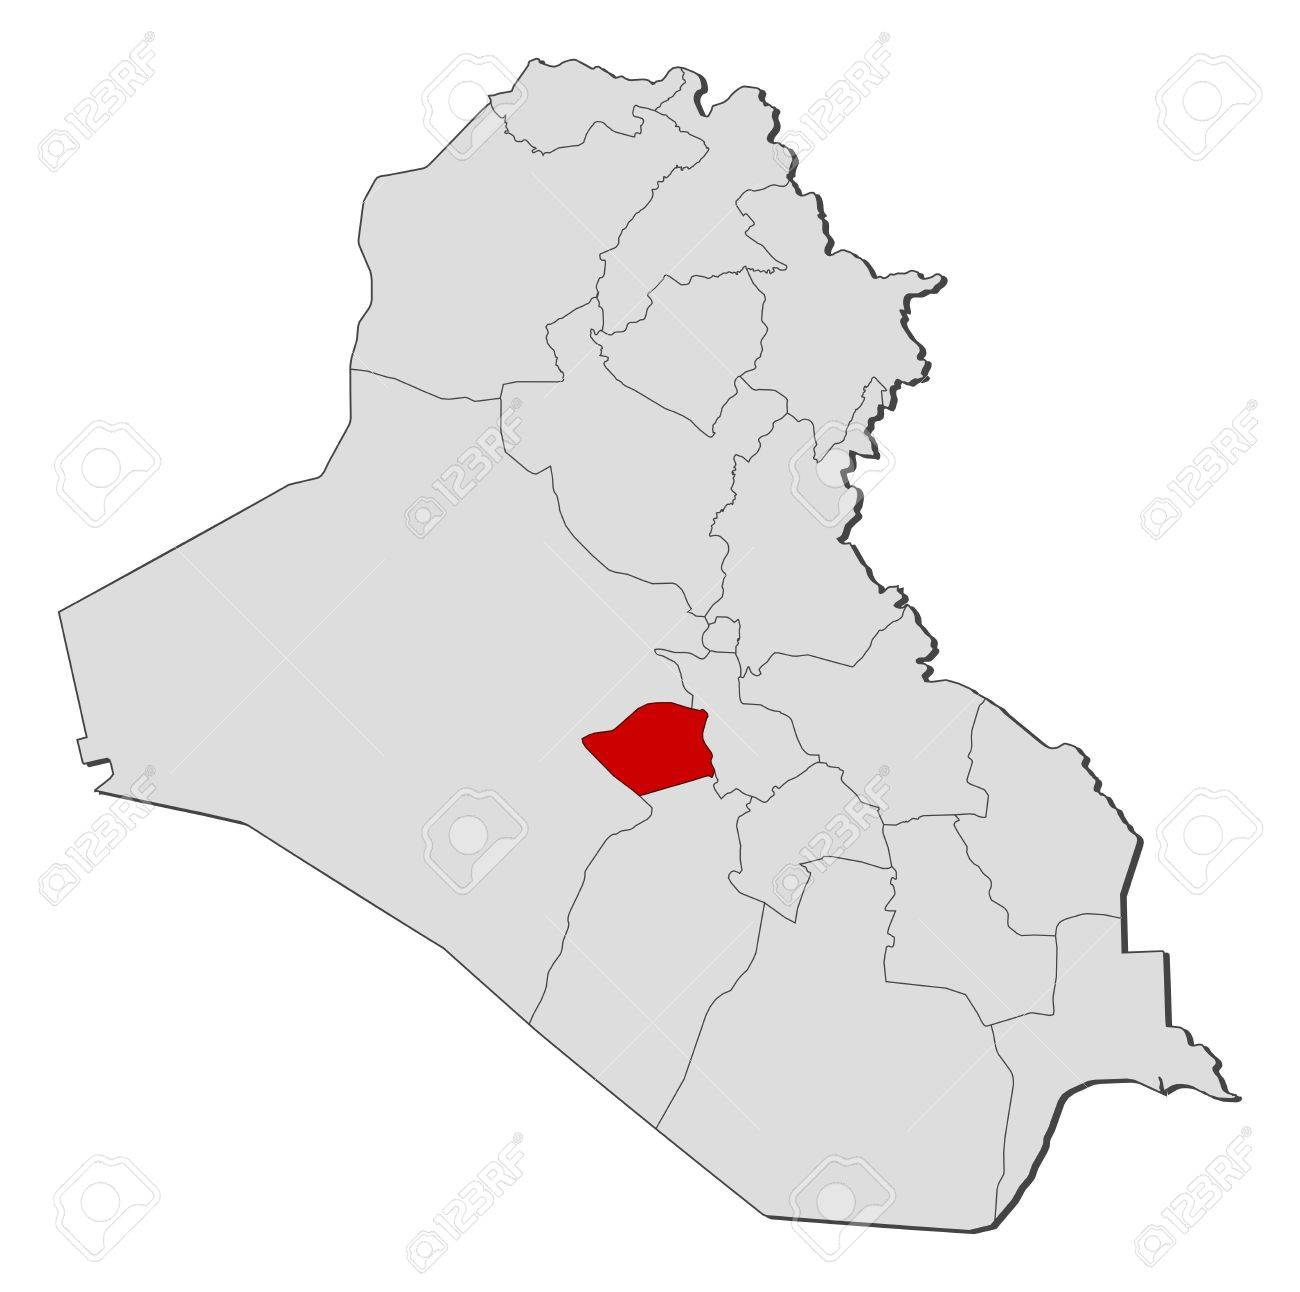 Political map of Iraq with the several governorates where Karbala